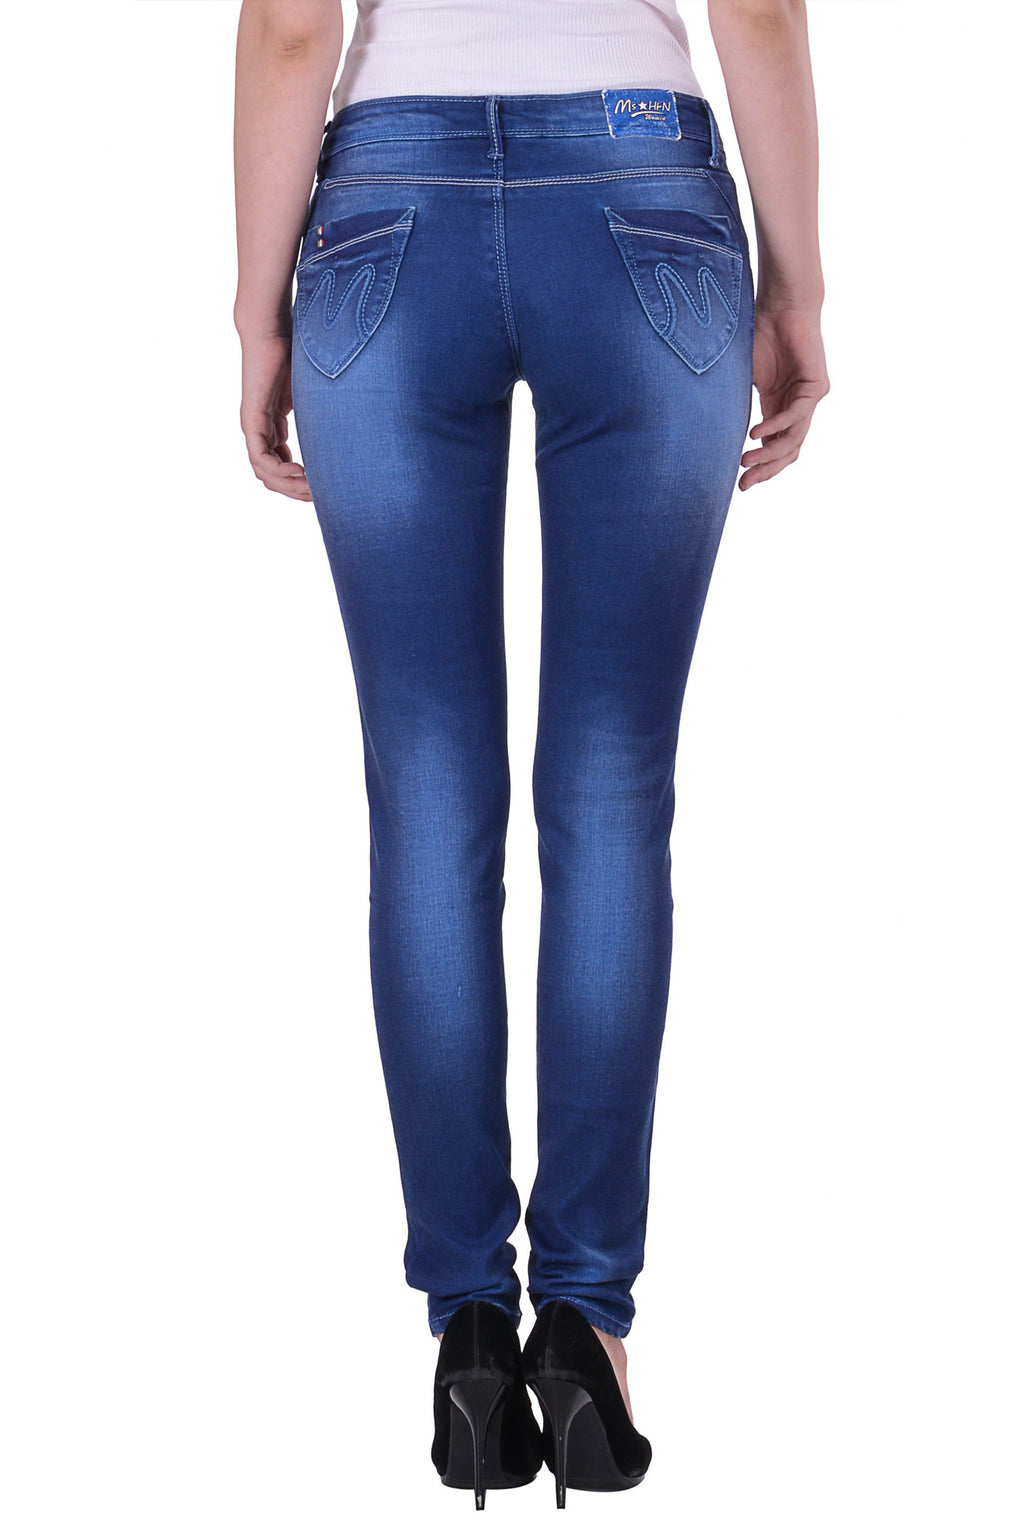 Hoffmen Slim Fit Women's Blue Jeans  MSB1205